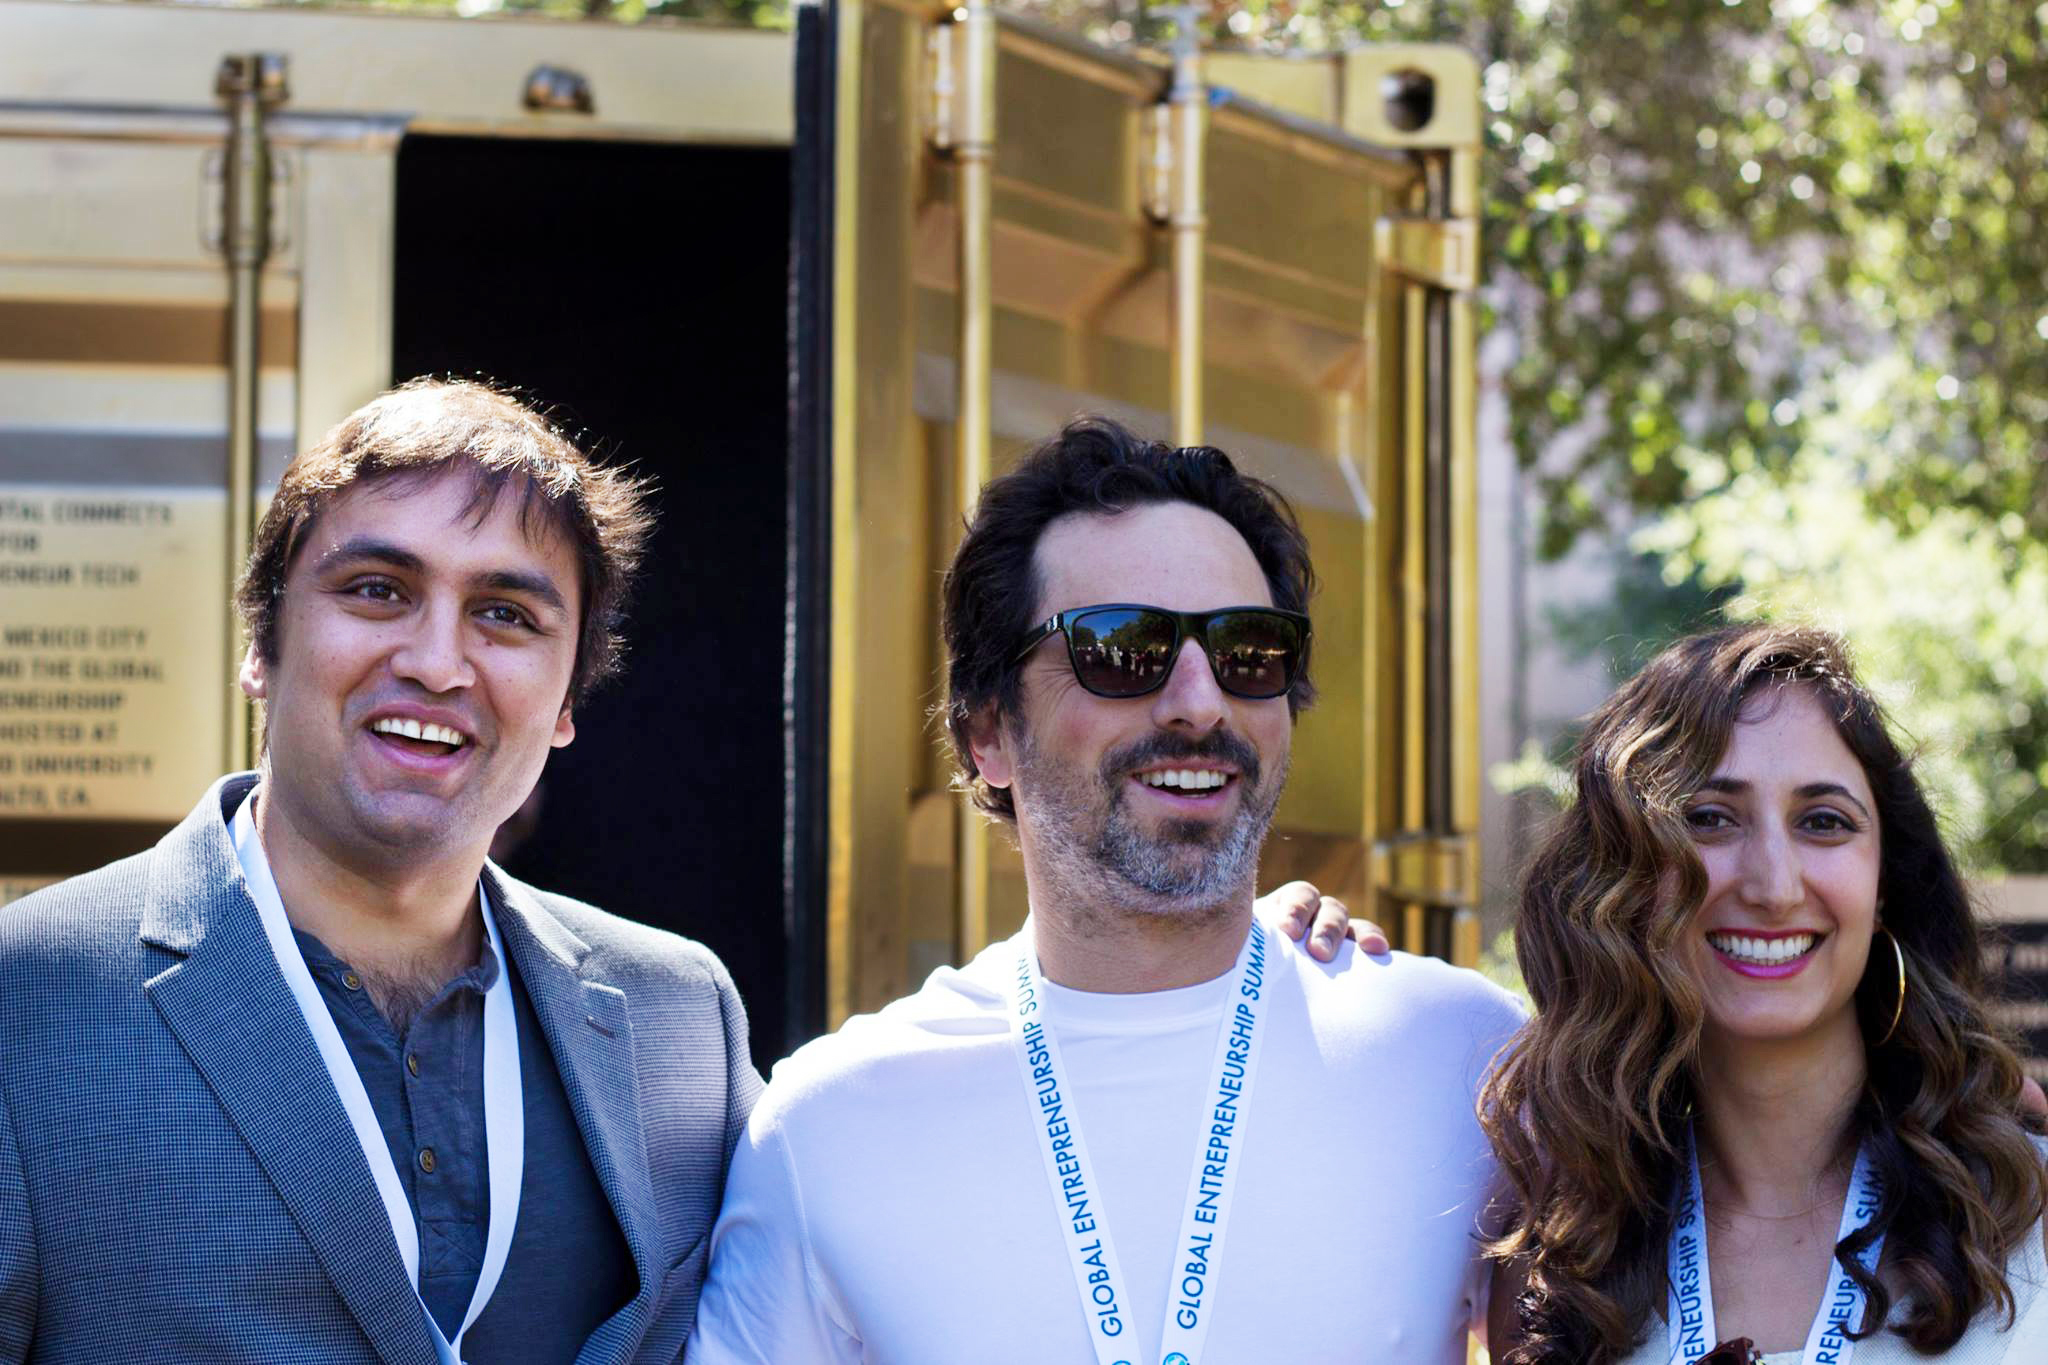 Copy of Founder Shared_Studios Amar Bakshi,  Co-Founder Shared_Studios Michelle Moghtader, Google's Sergey Brin at GES 2016 at Stanford.jpg